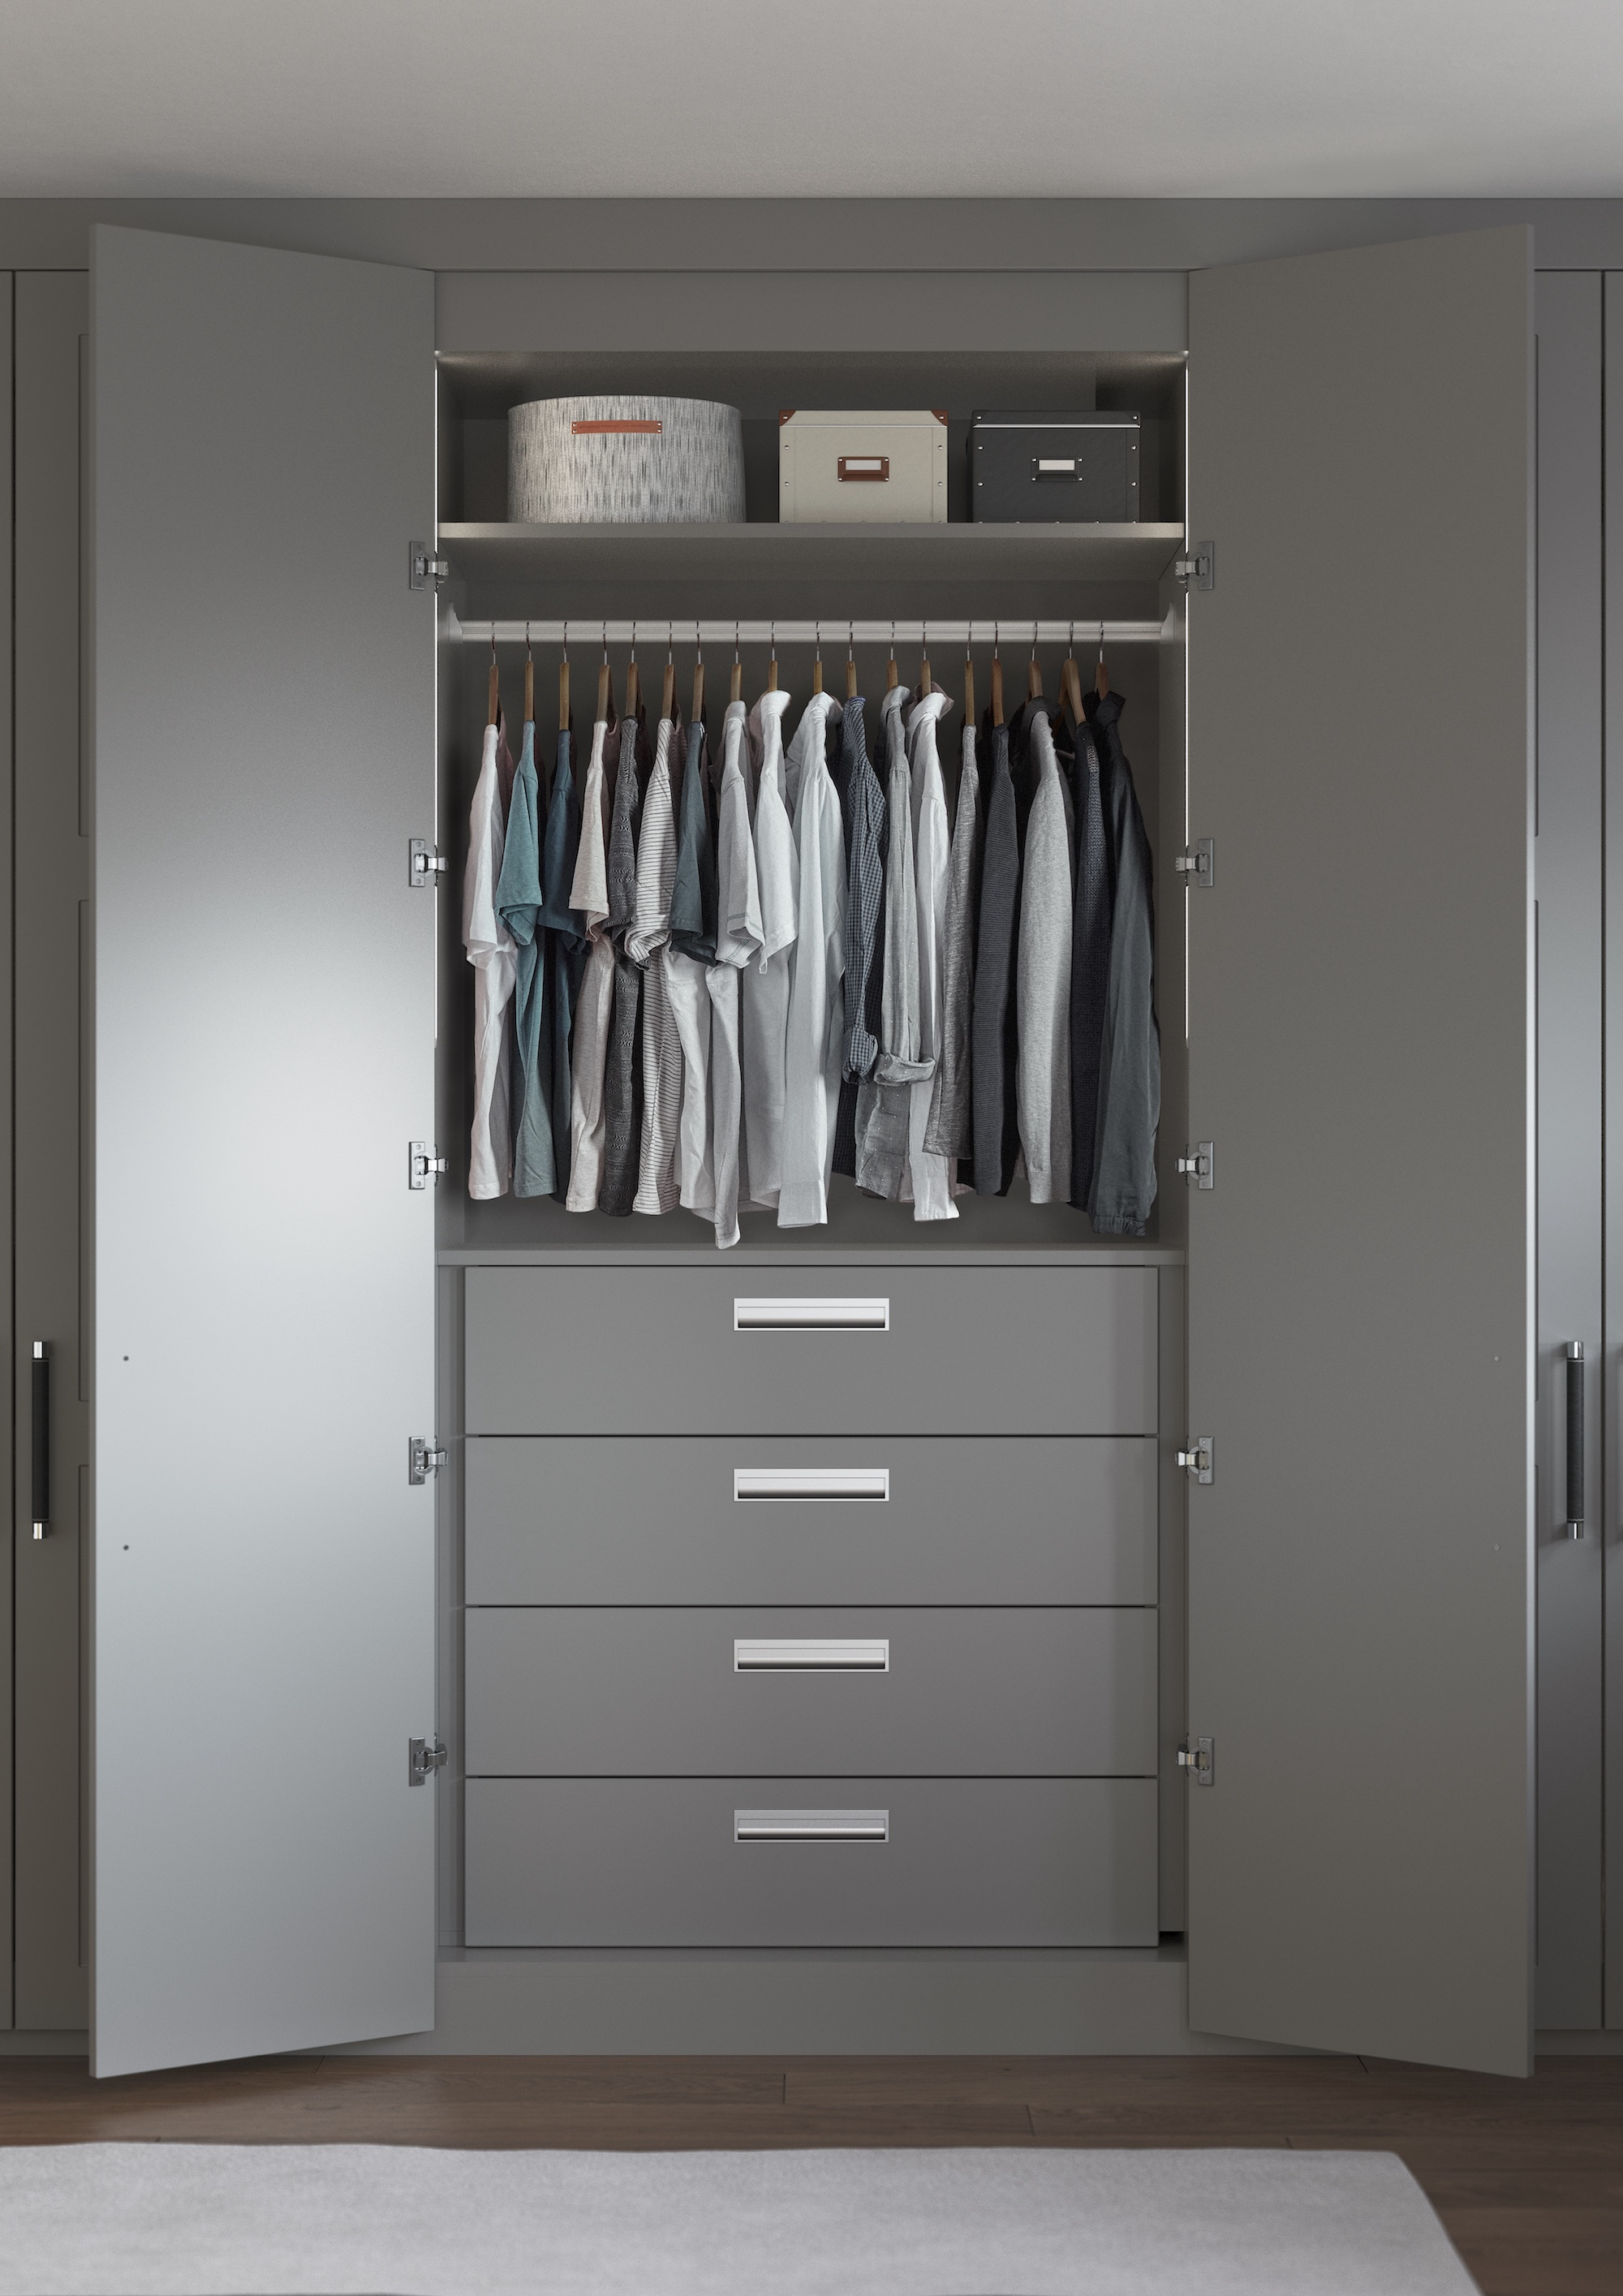 Grooming Unit with internalfour drawer insert.jpg